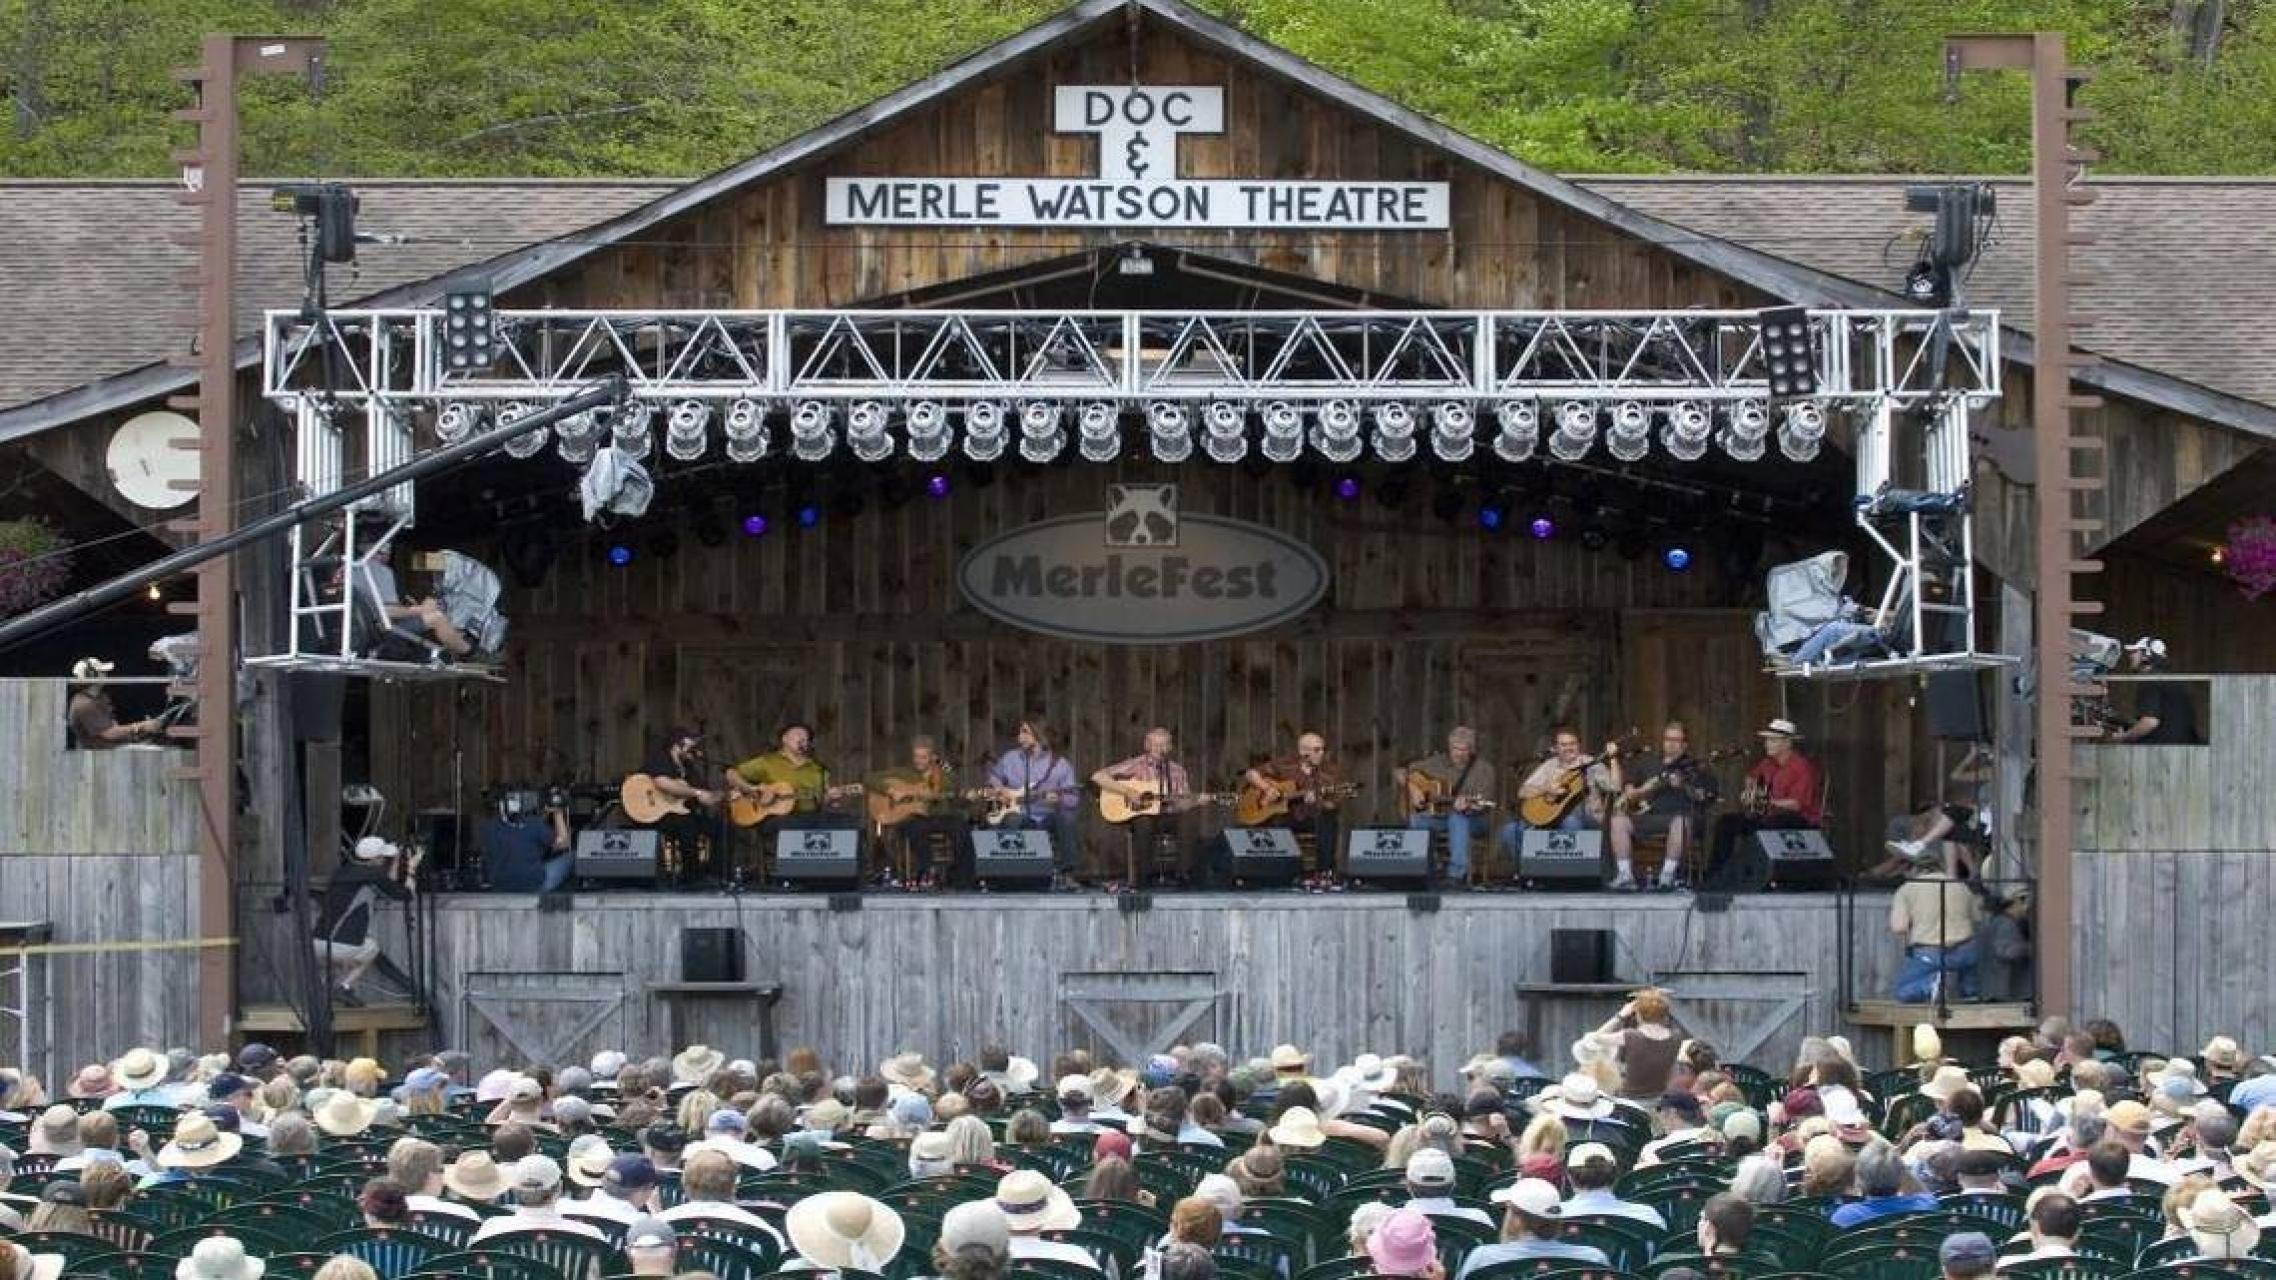 The Doc and Merle Watson Theatre at Merlefest, 2013